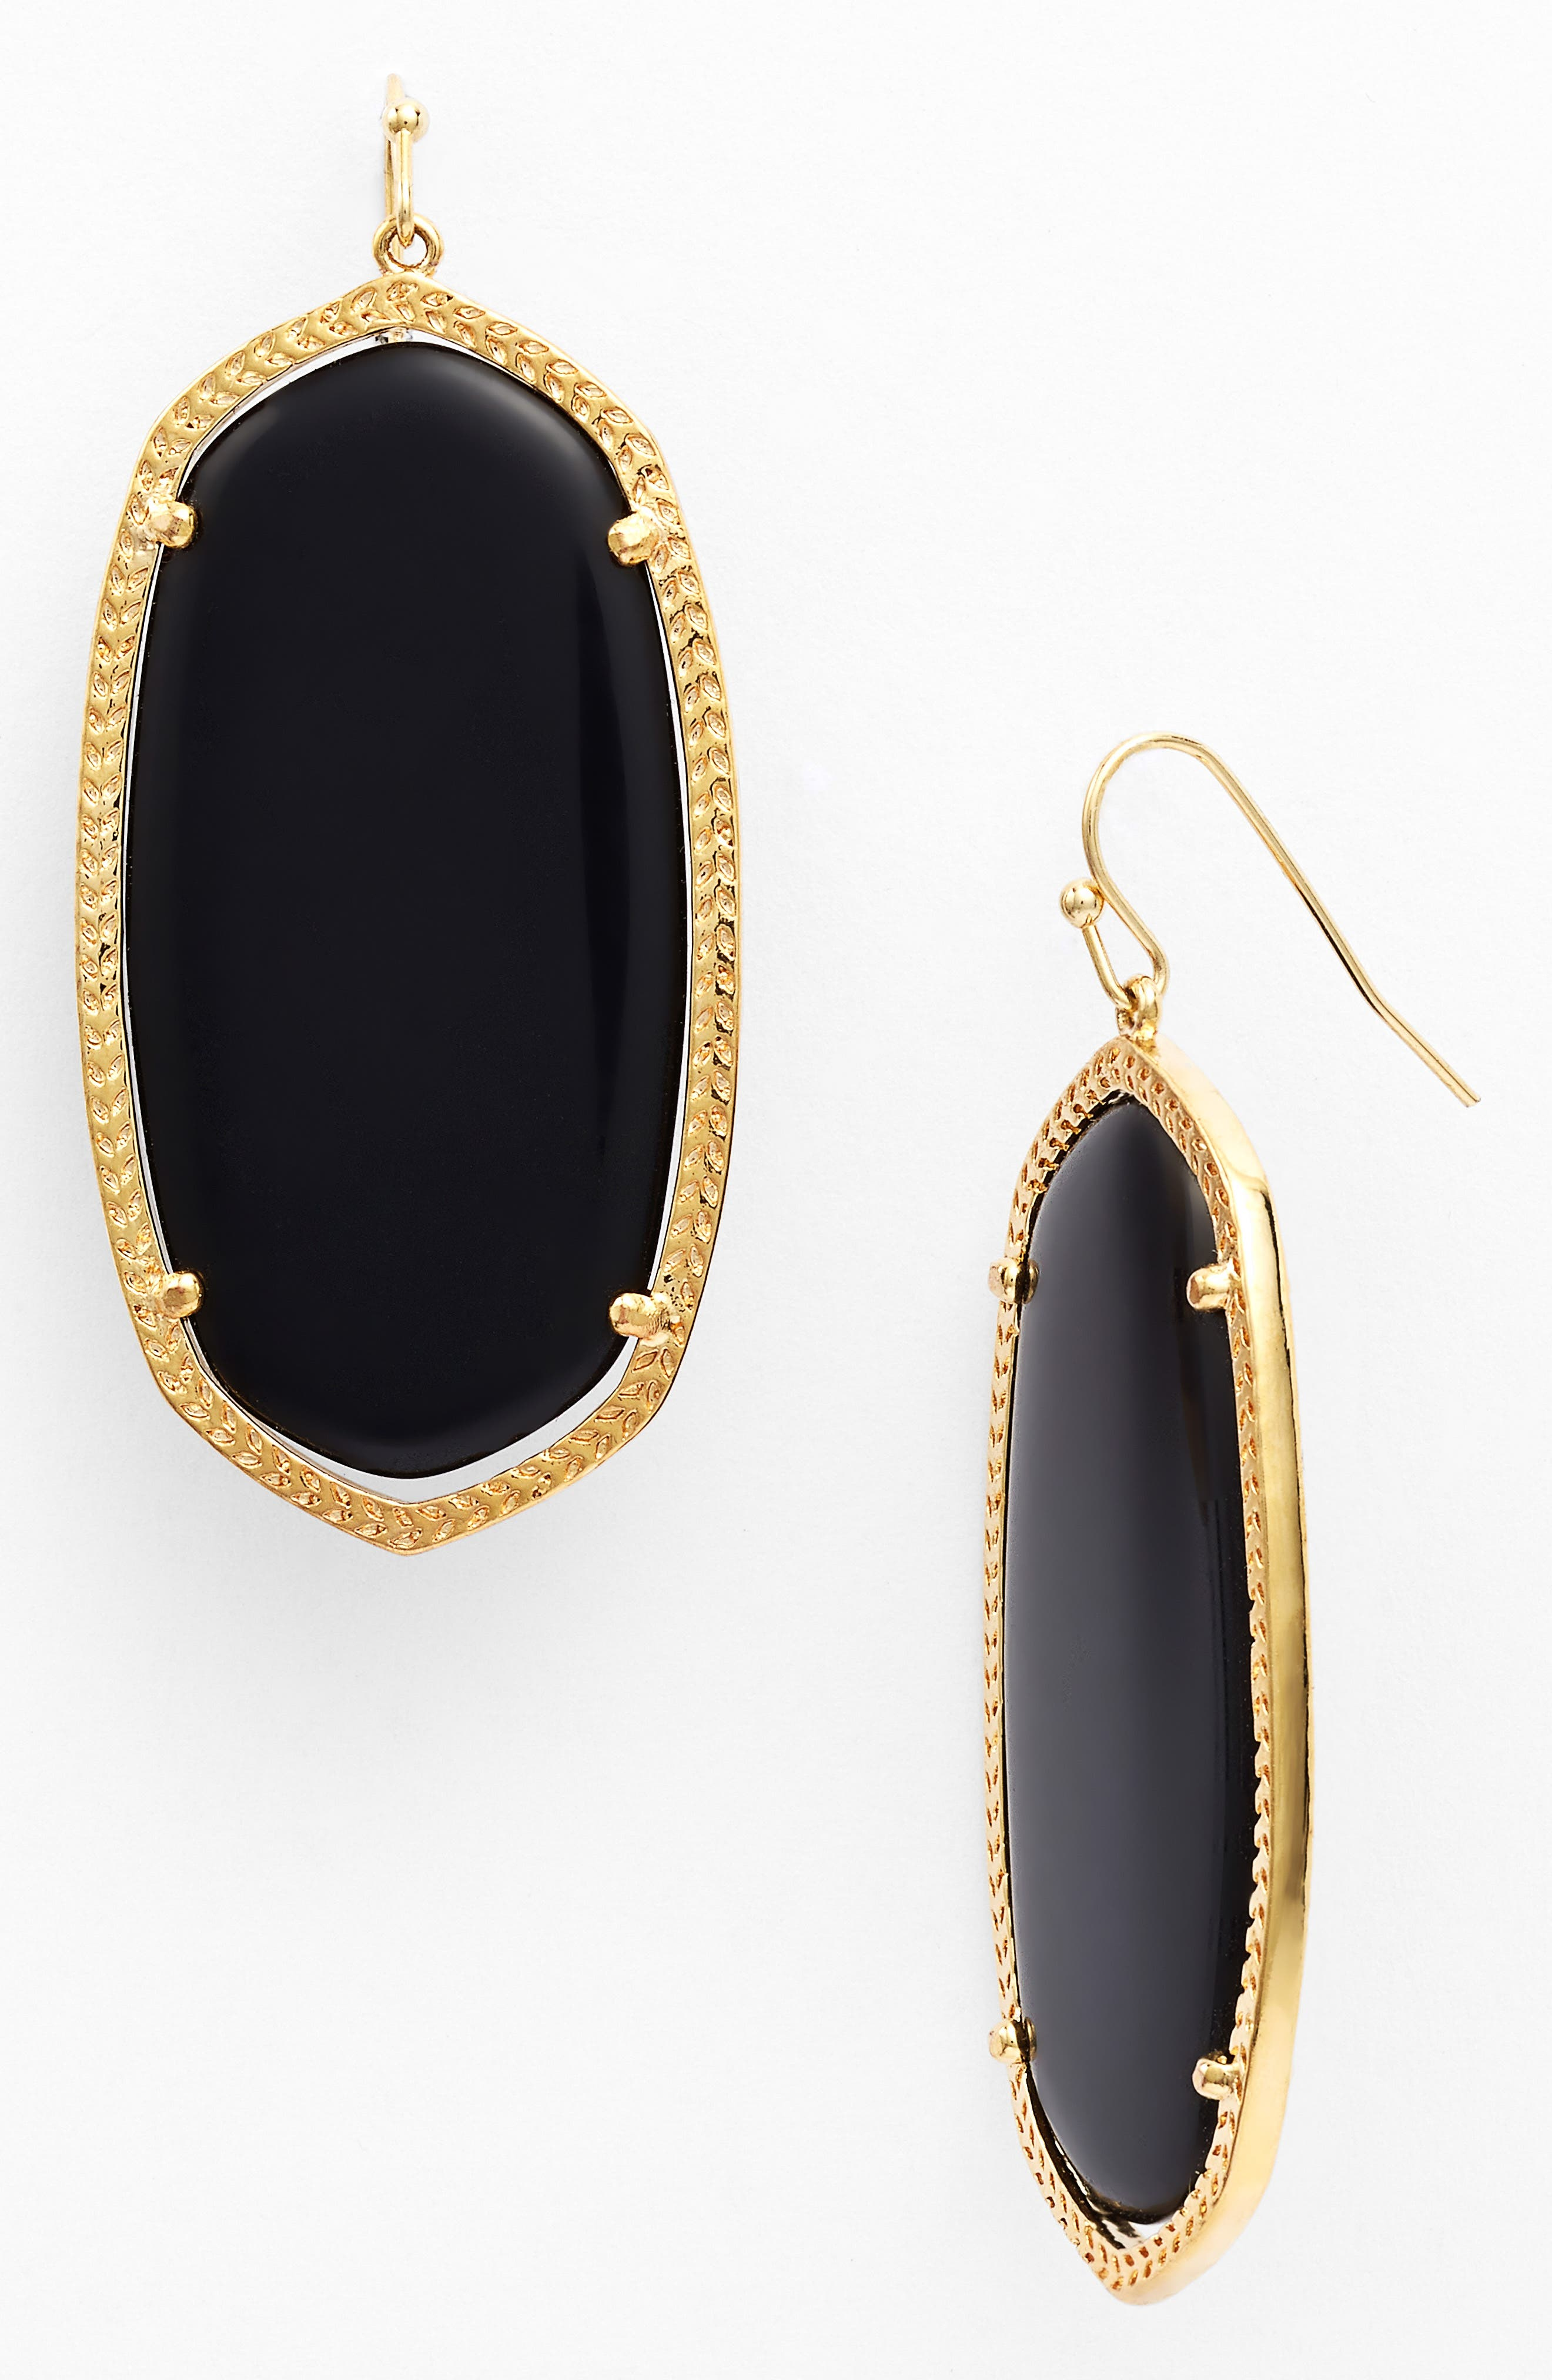 Danielle - Large Oval Statement Earrings,                             Alternate thumbnail 2, color,                             001